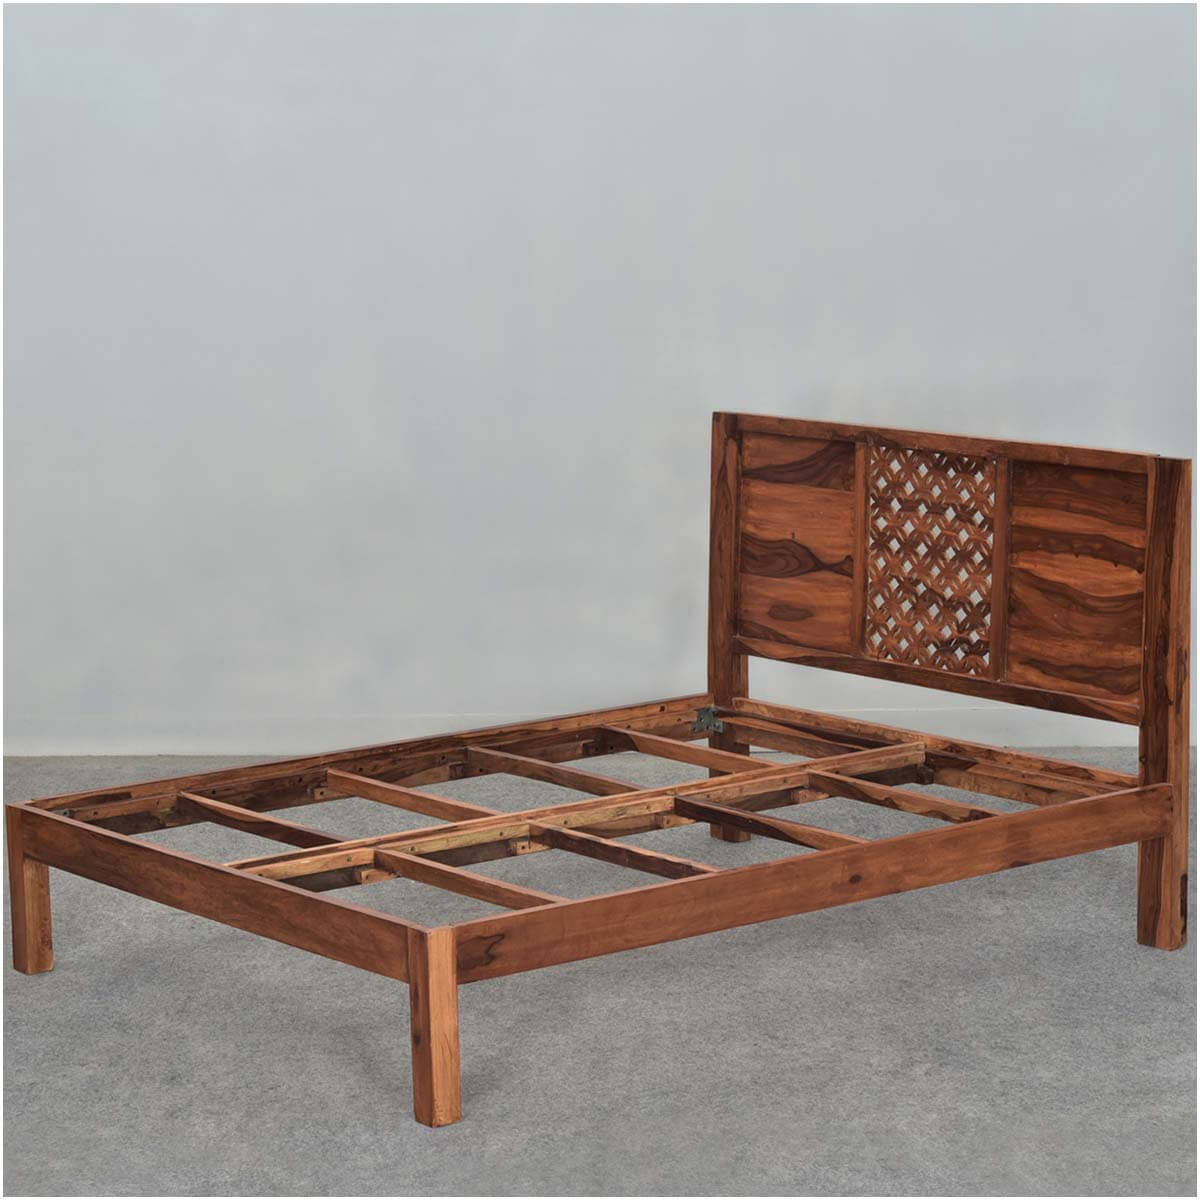 diamond lattice solid wood rustic full size platform bed frame. Black Bedroom Furniture Sets. Home Design Ideas